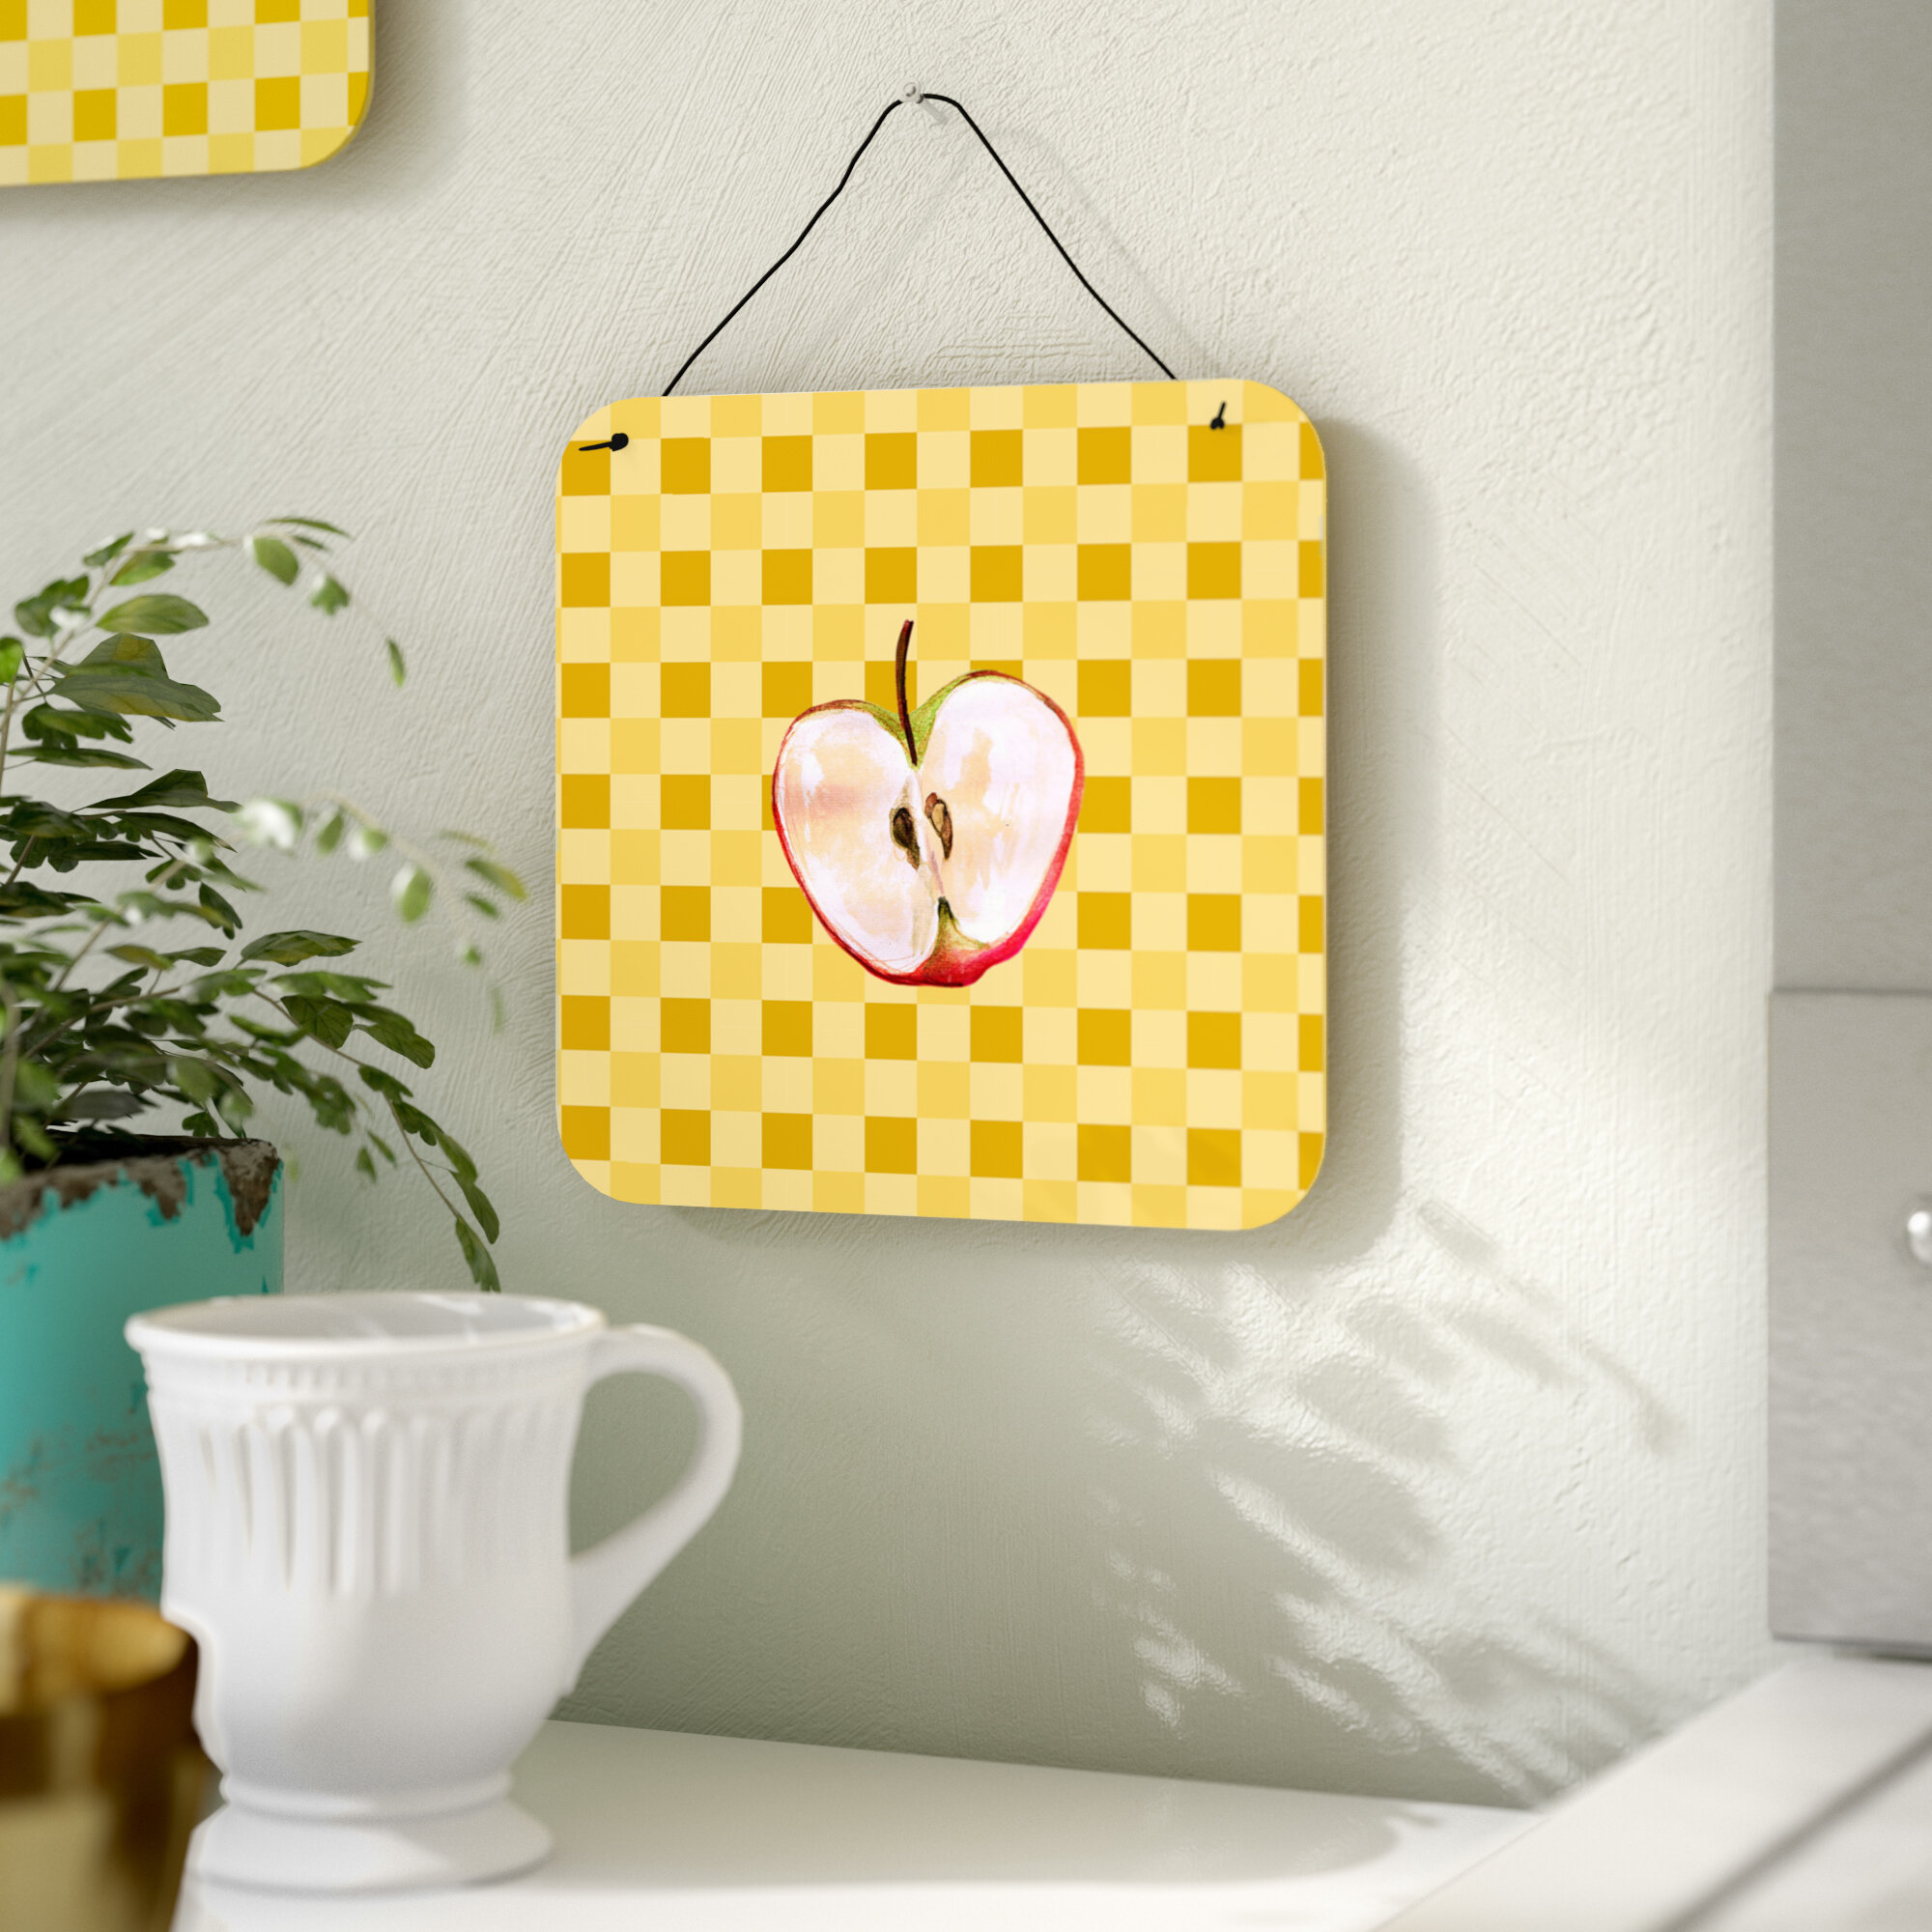 August Grove Half Apple on Basketweave Wall Décor | Wayfair